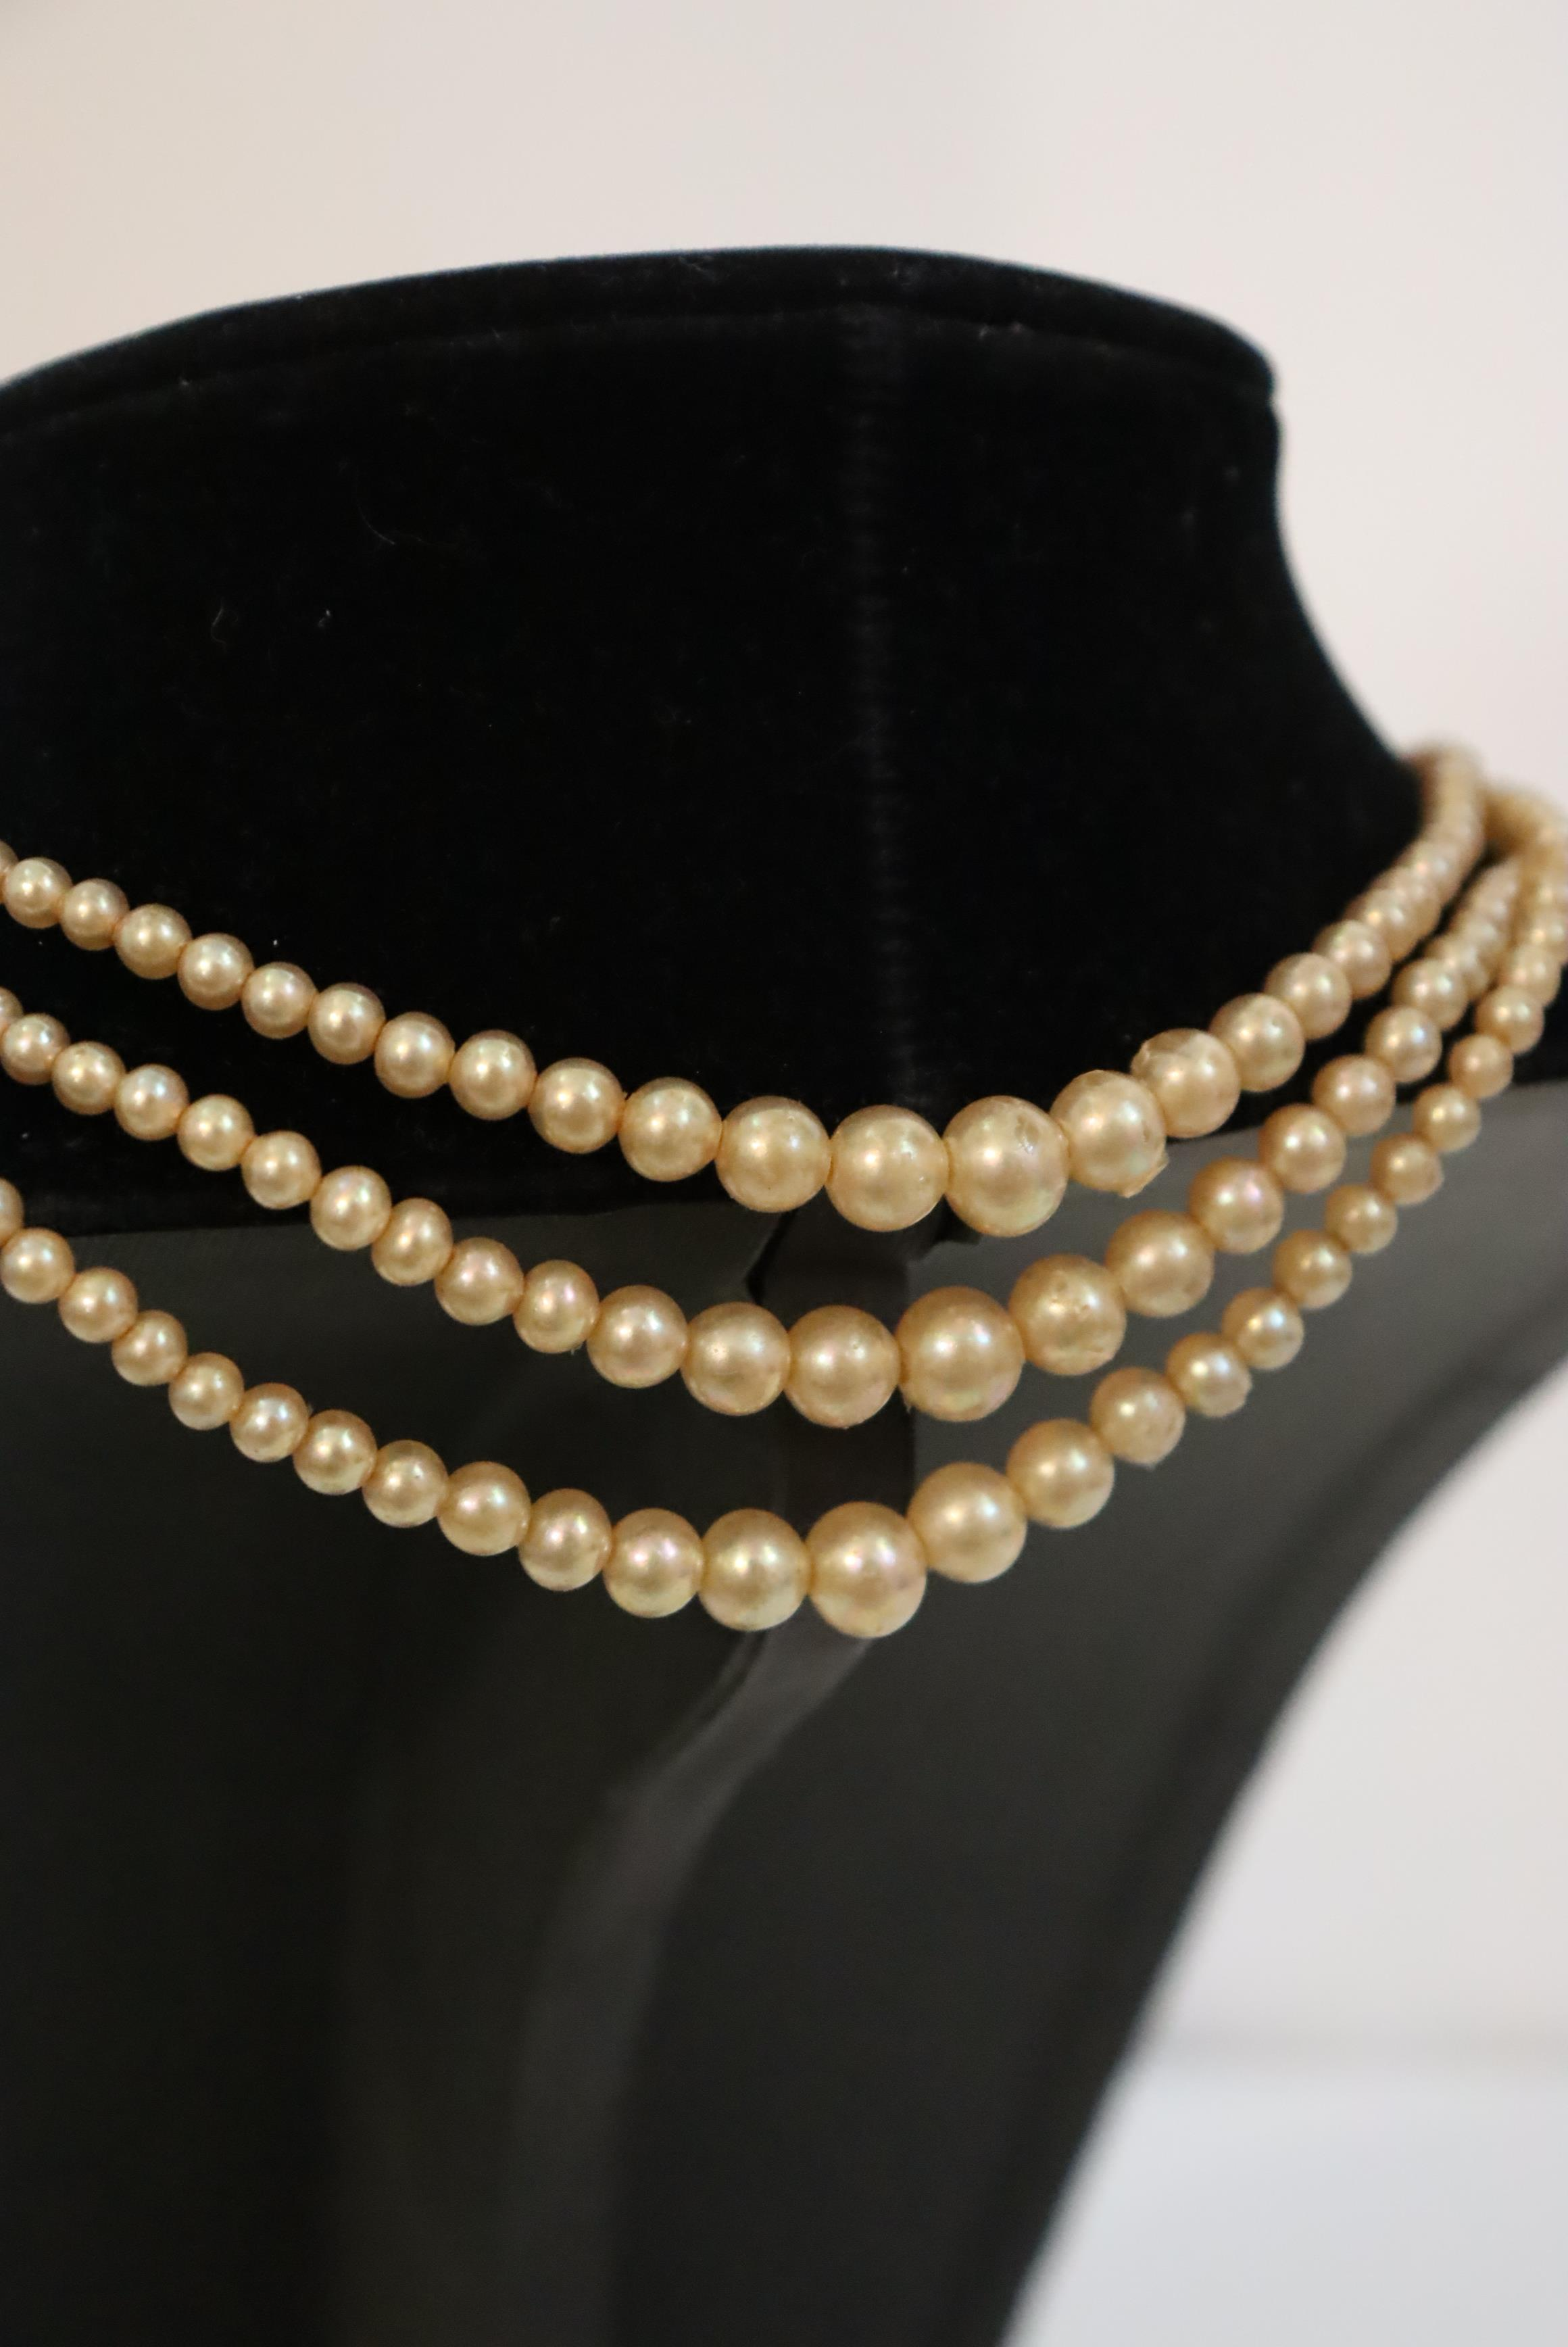 Large Collection of (10) Pearl / Beaded Necklaces - Image 9 of 20